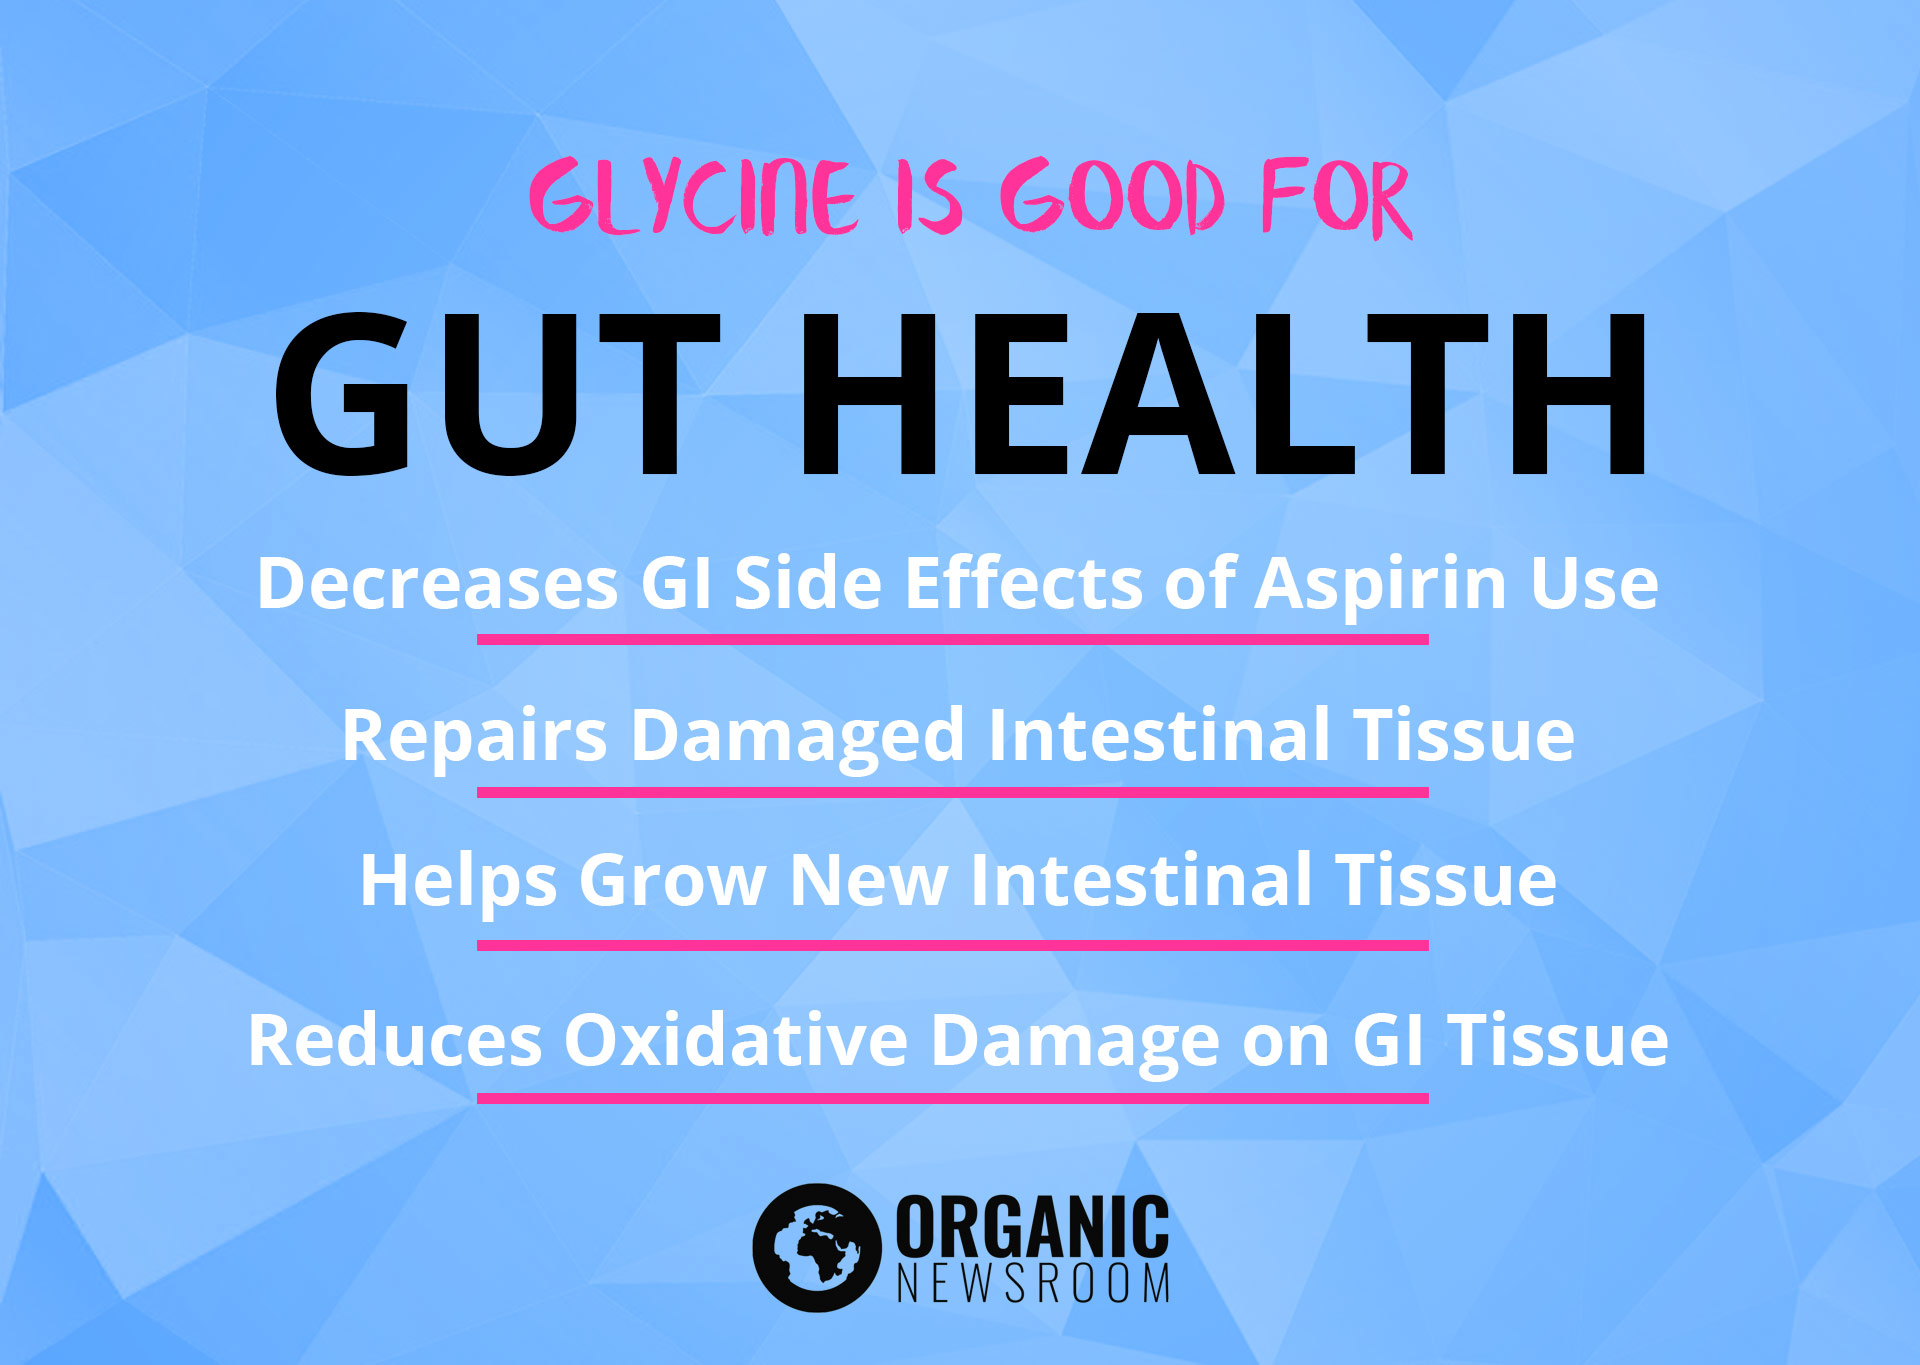 Glycine Gut Health Benefits OrganicNewsroom